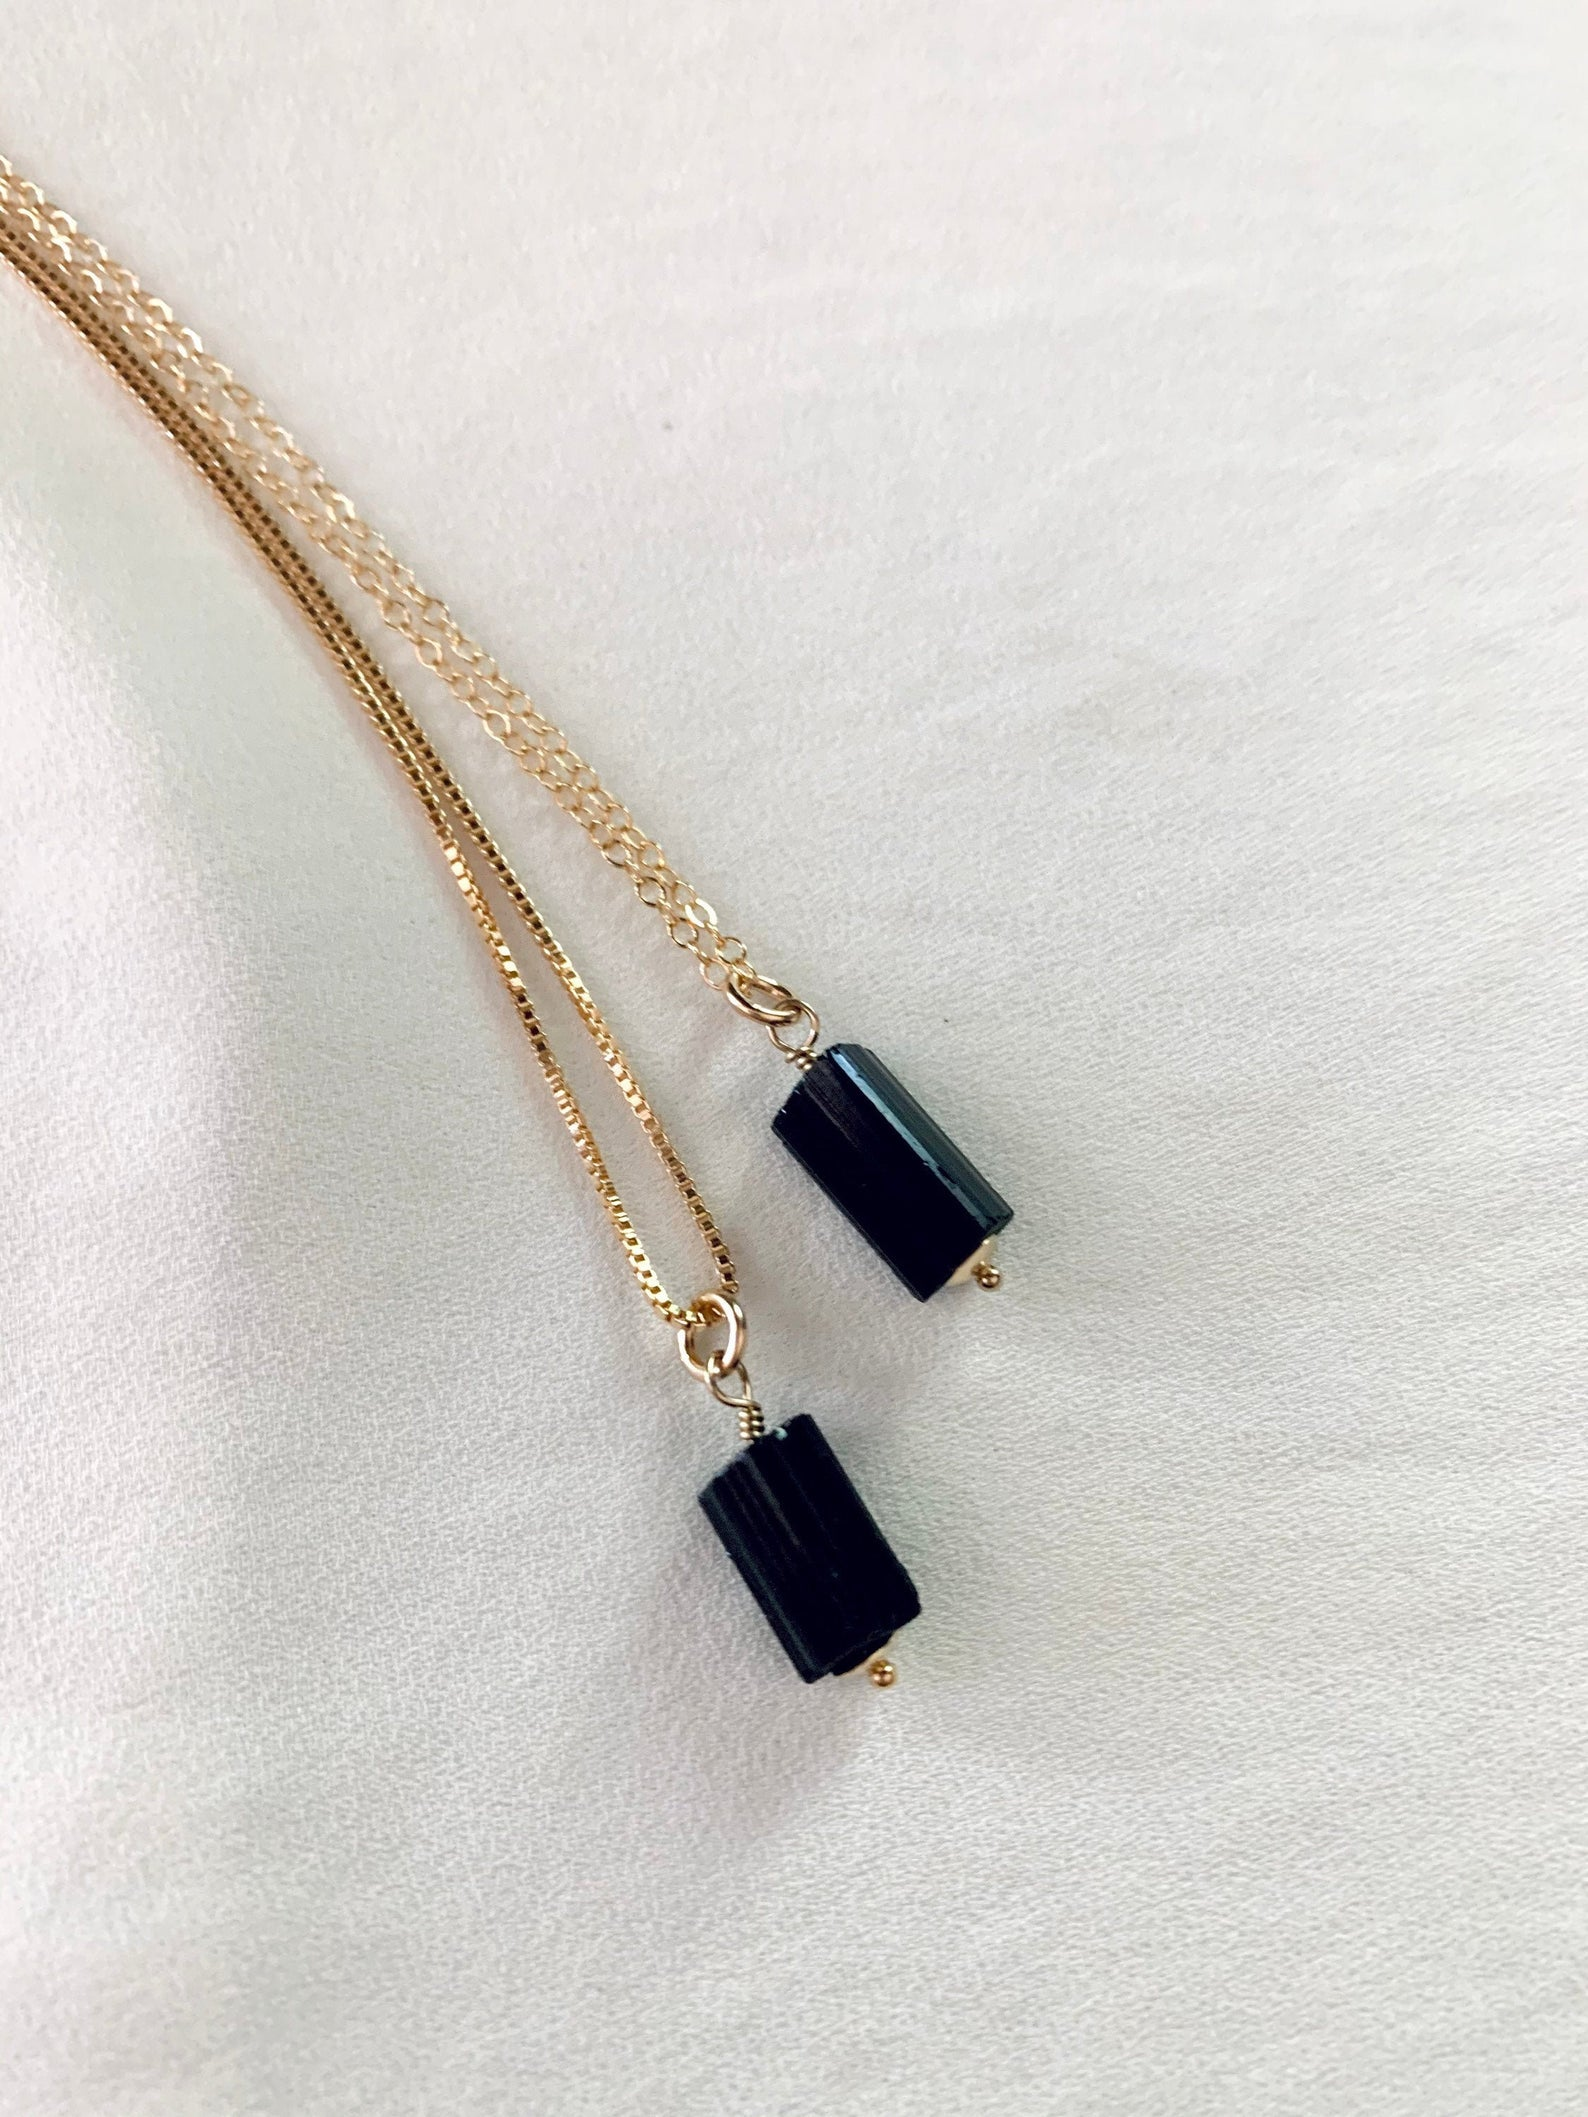 Genuine Raw Black Tourmaline Pendant Necklace - Gold